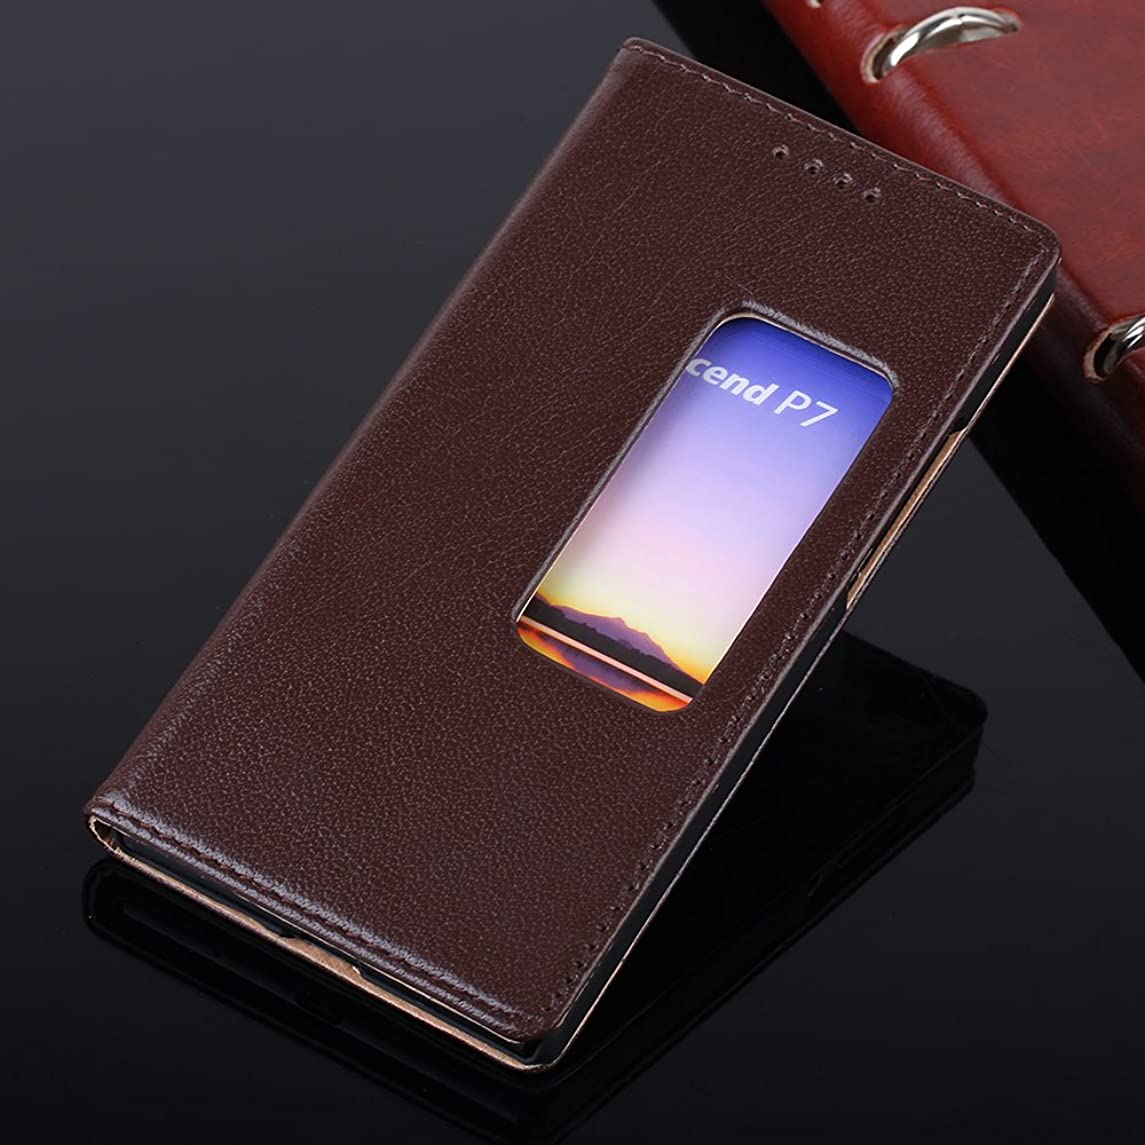 P7 View Case,EVERGREENBUYING Genuine Leather P7-L00 Cases [Premium Leather Wallet][Slim Fit][Window View] Luxury Flip Slim View Cover Case For Huawei Ascend P7 / Sophia Brown